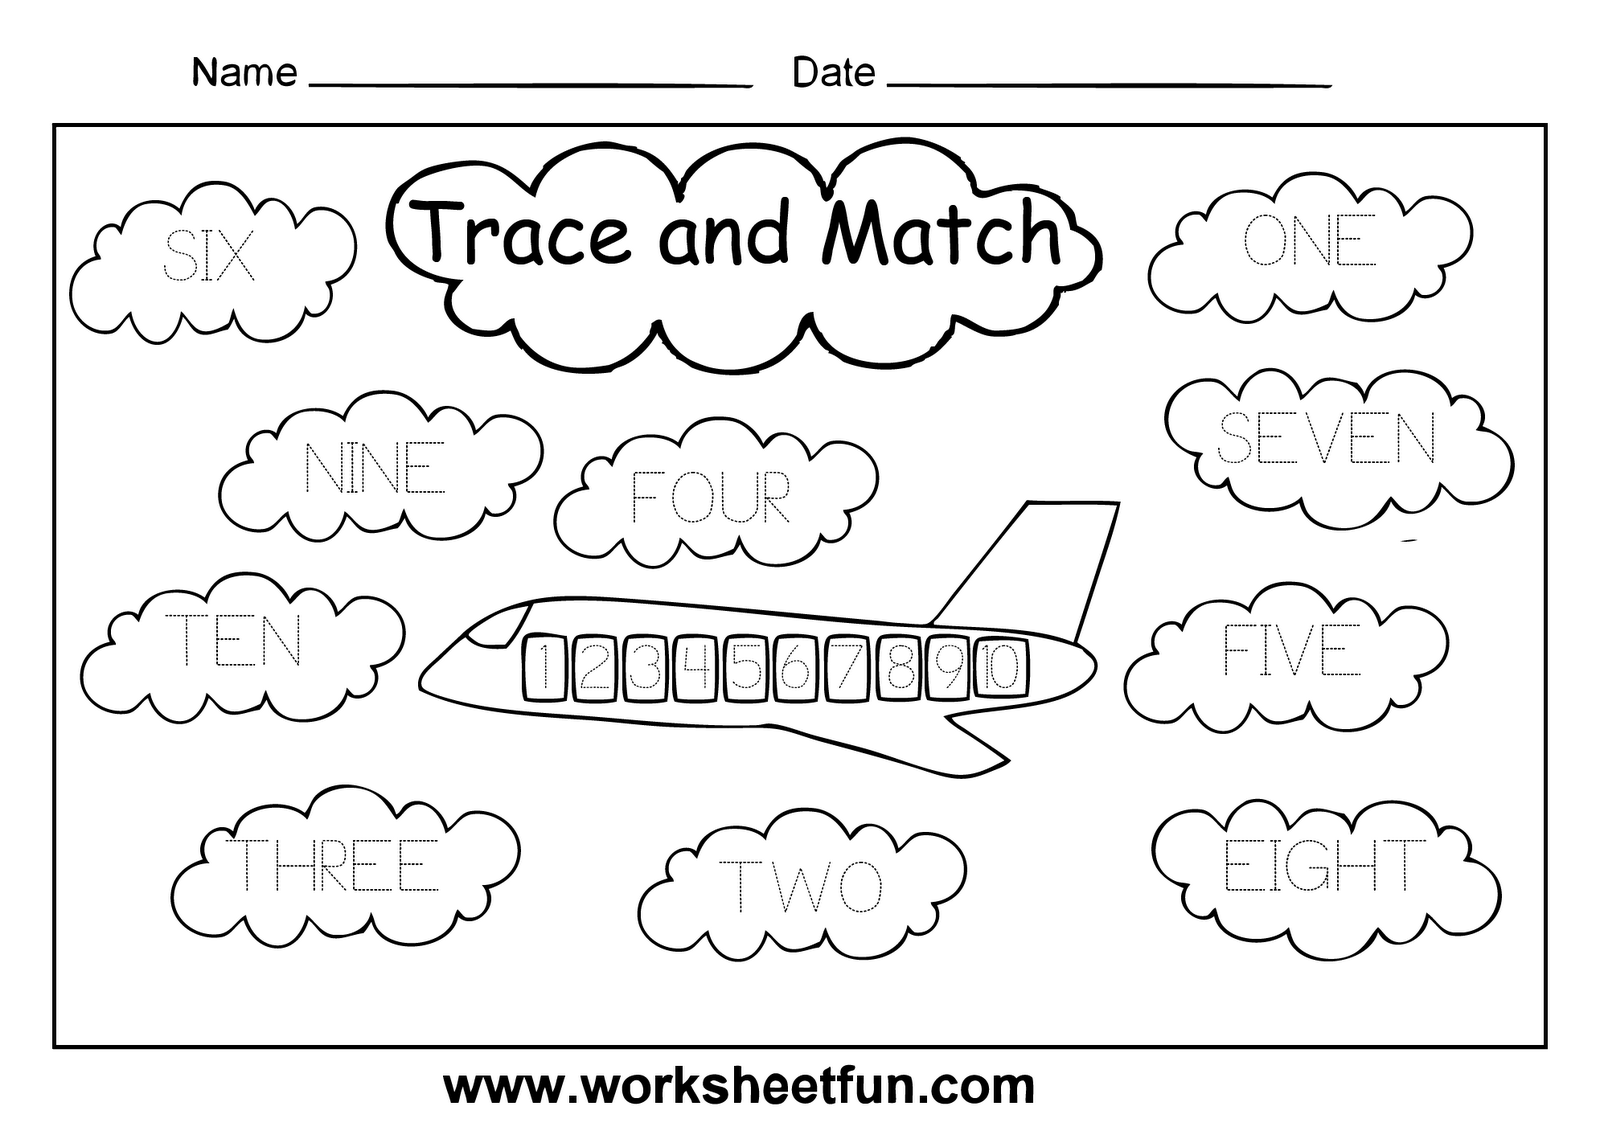 Proatmealus  Nice Numbers Worksheet    Narrativamente With Goodlooking Letter Worksheet Besides  States And Capitals Worksheet Furthermore Place Value Worksheets For First Grade With Delightful Worksheets For School Also Temperature Worksheet In Addition Navmc  Counseling Worksheet And Career Worksheet As Well As  Whys Worksheet Additionally Preschool Halloween Worksheets From Narrativamentecom With Proatmealus  Goodlooking Numbers Worksheet    Narrativamente With Delightful Letter Worksheet Besides  States And Capitals Worksheet Furthermore Place Value Worksheets For First Grade And Nice Worksheets For School Also Temperature Worksheet In Addition Navmc  Counseling Worksheet From Narrativamentecom